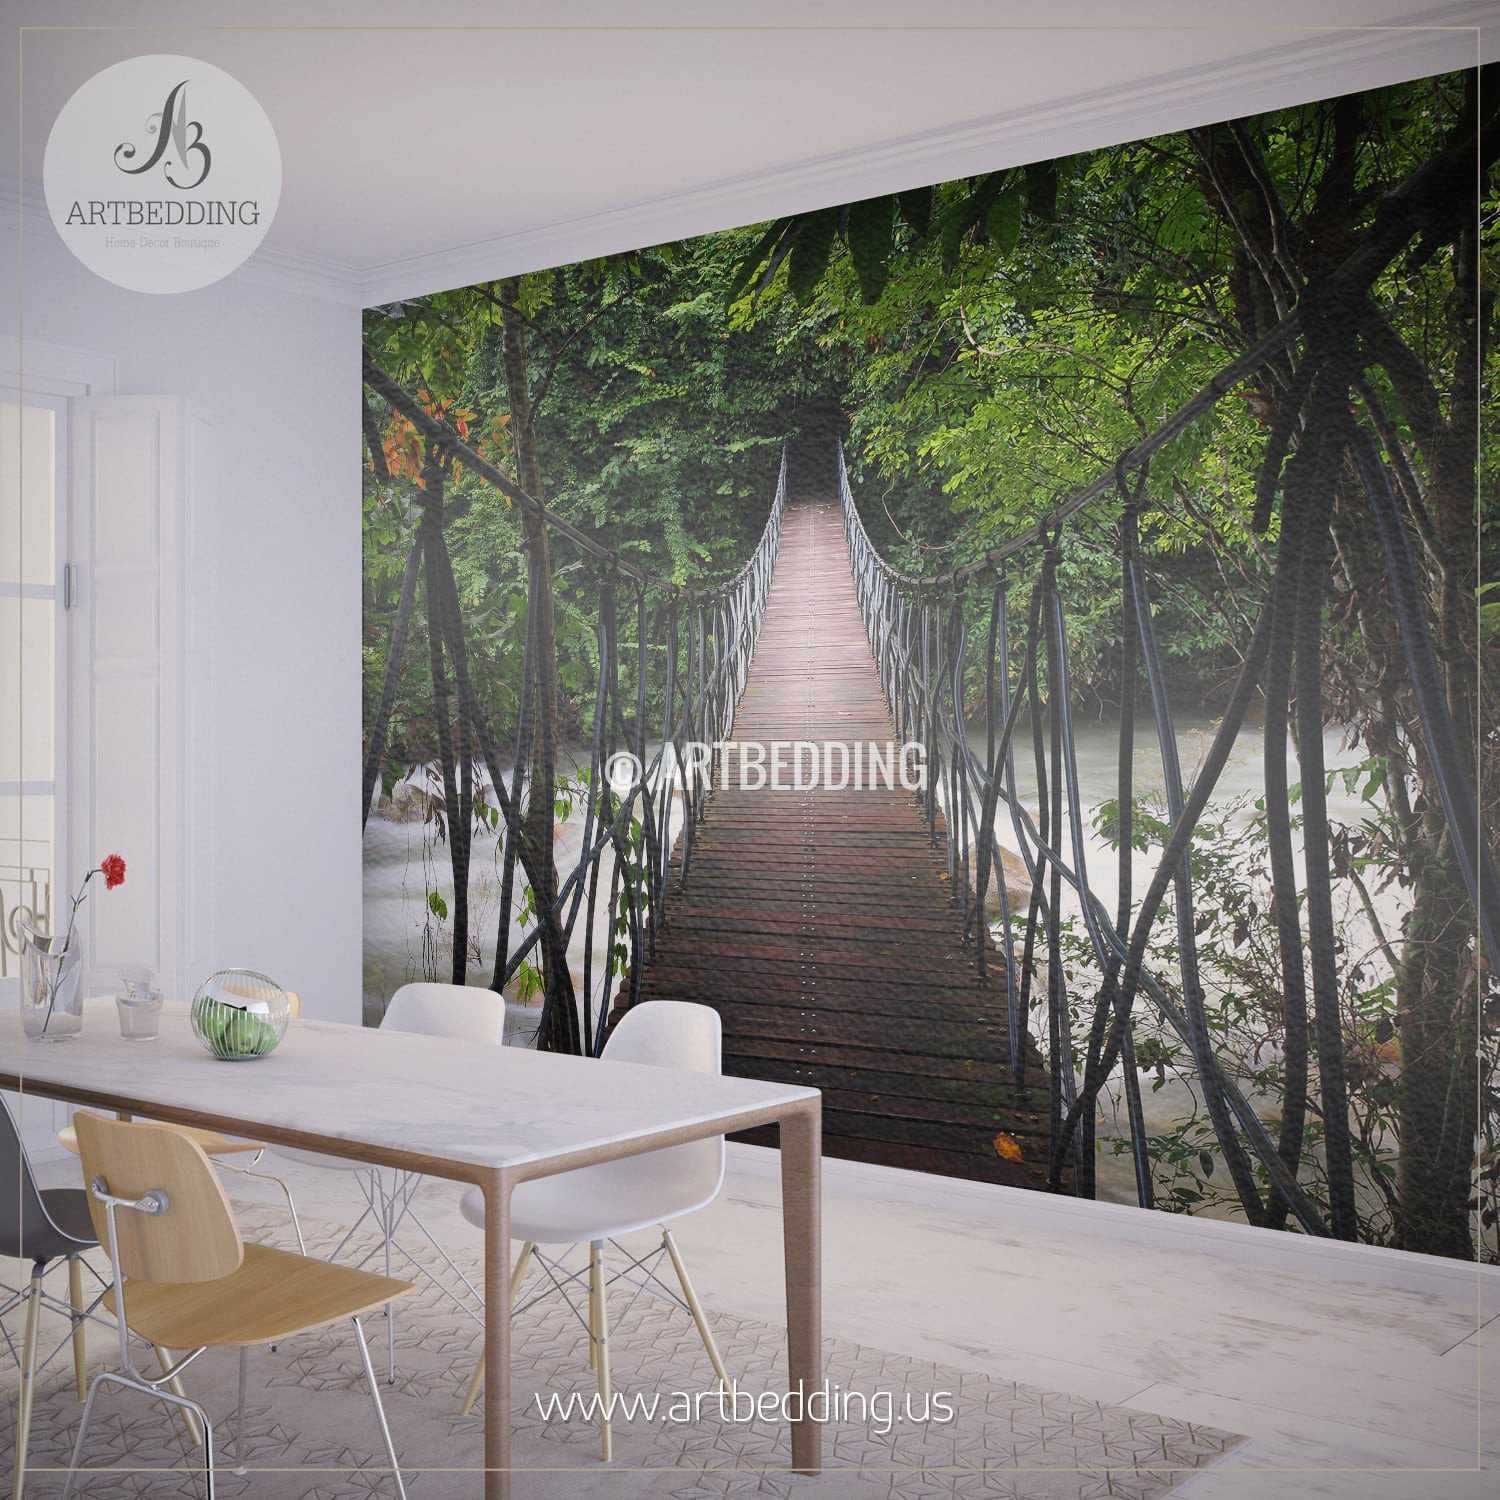 Wall Murals peel and stick selfadhesive vinyl HD print Tagged